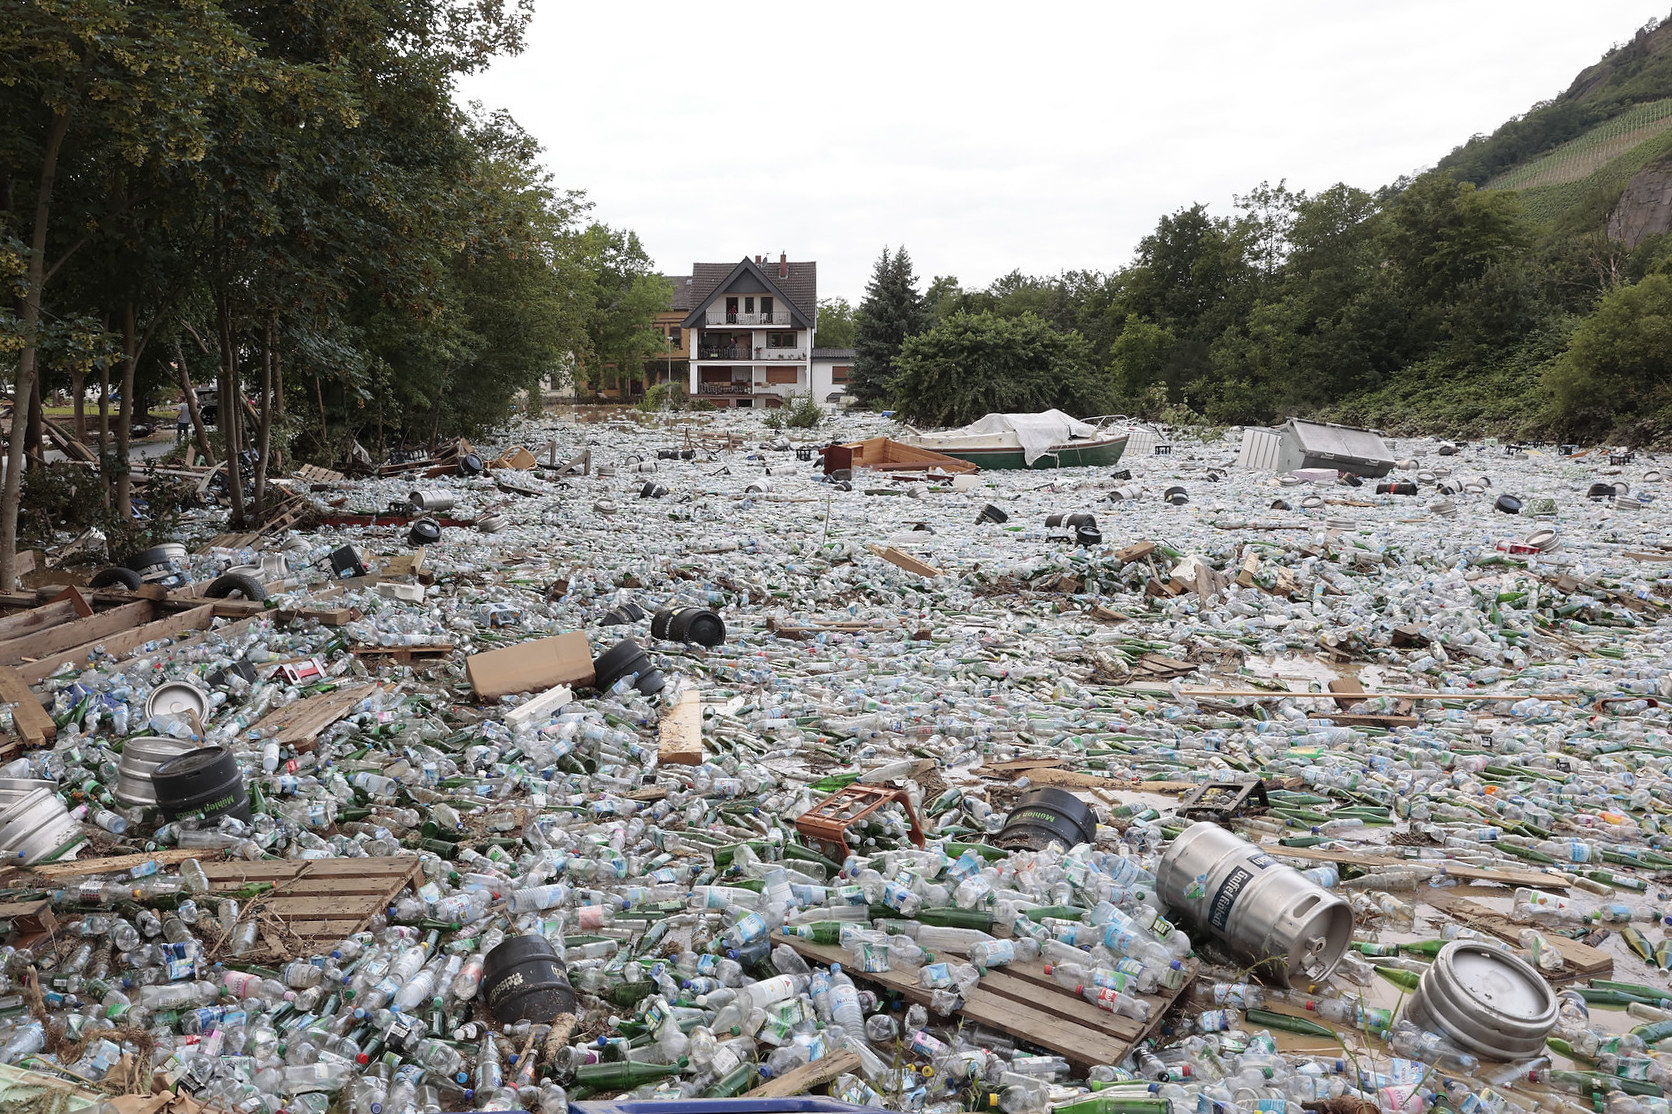 A large area of ground is covered in plastic water bottles, glass bottles, and beer kegs